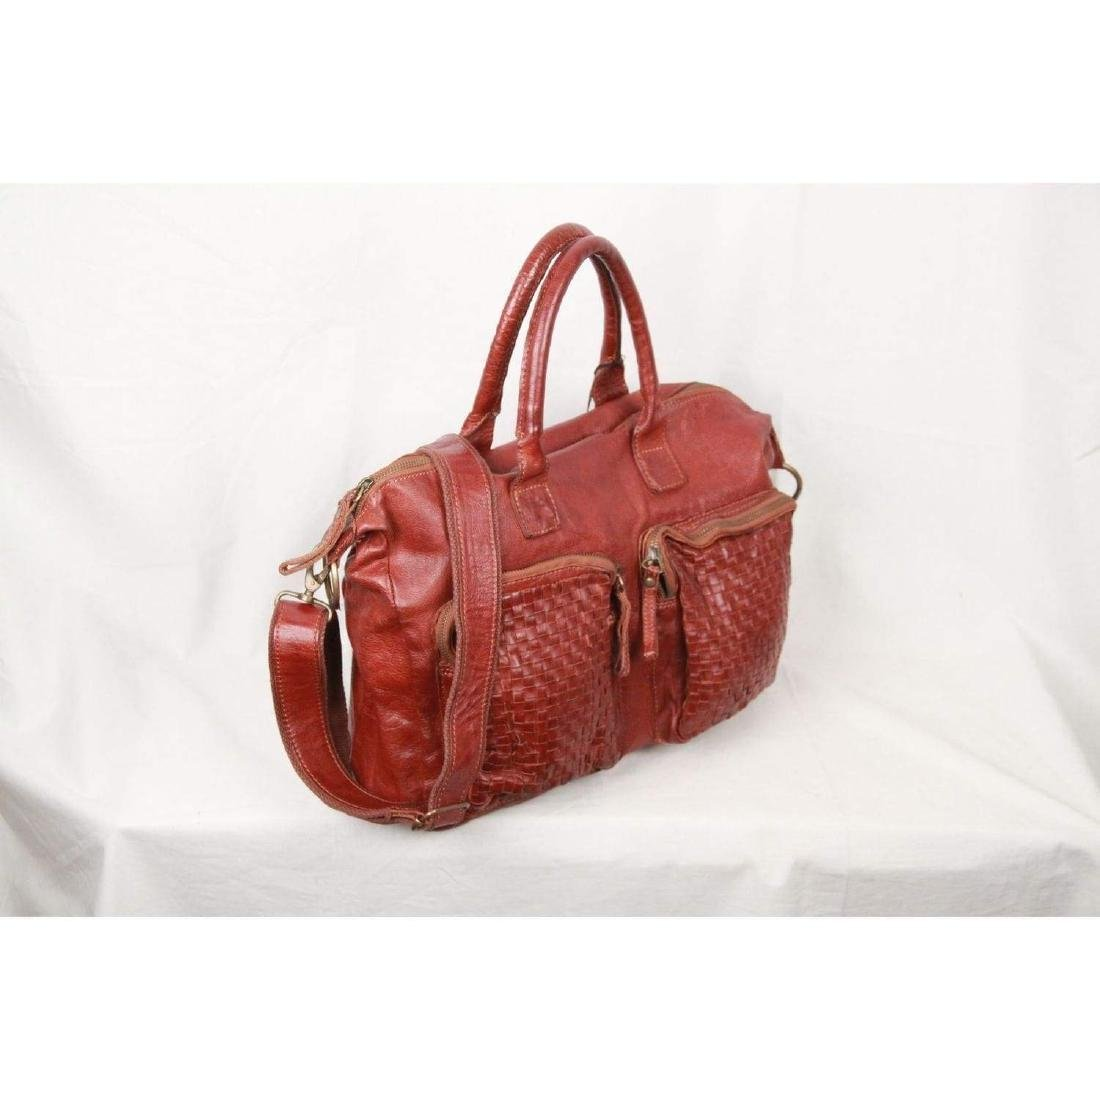 COWBOYSBAG Brown Leather THE BAG Satchel with WOVEN - 7